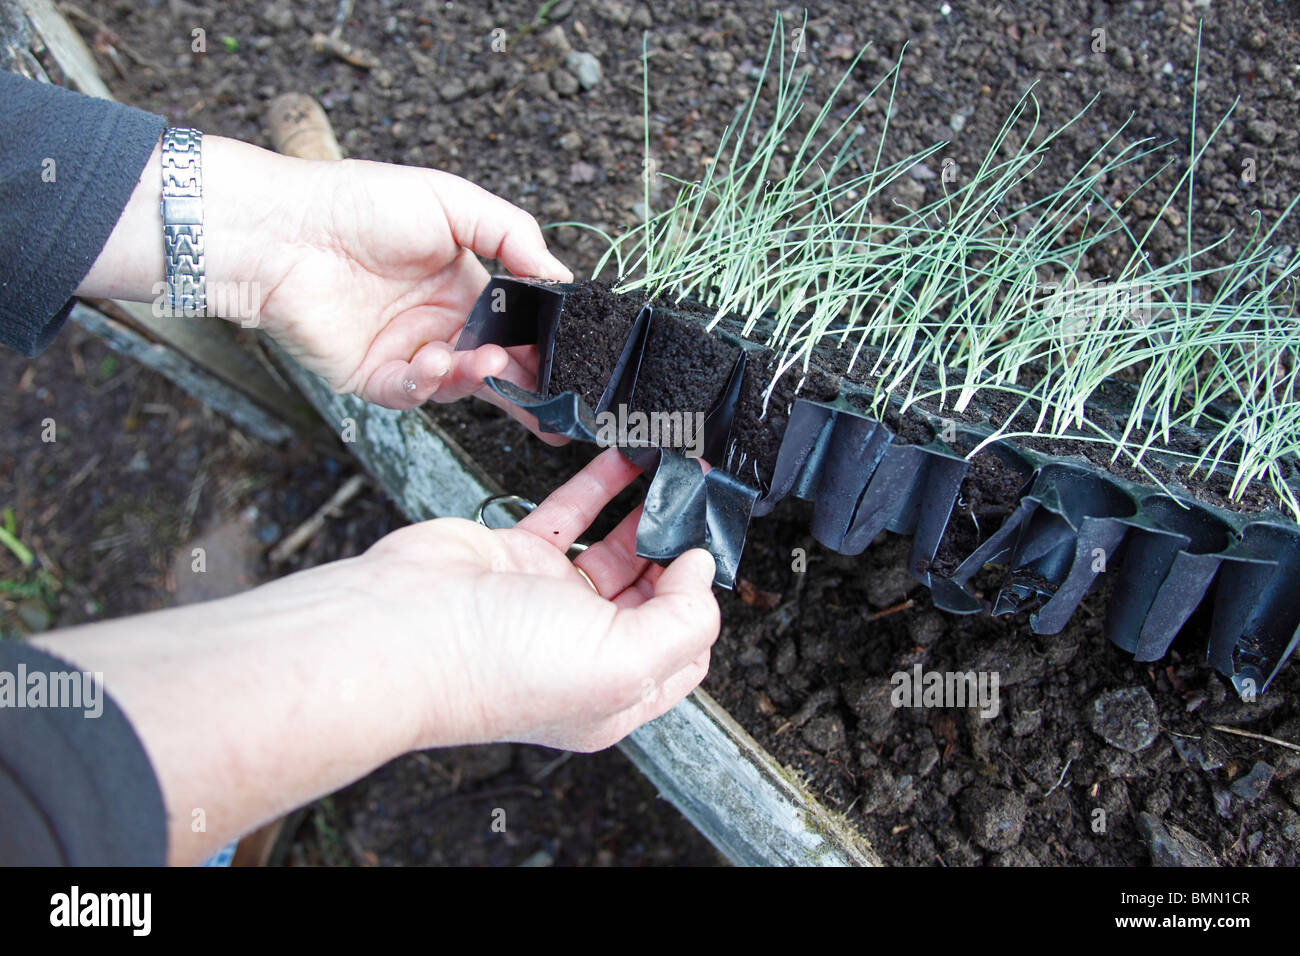 transplanting leeks- tear the sides of the plastic module to remove the plug complete - Stock Image